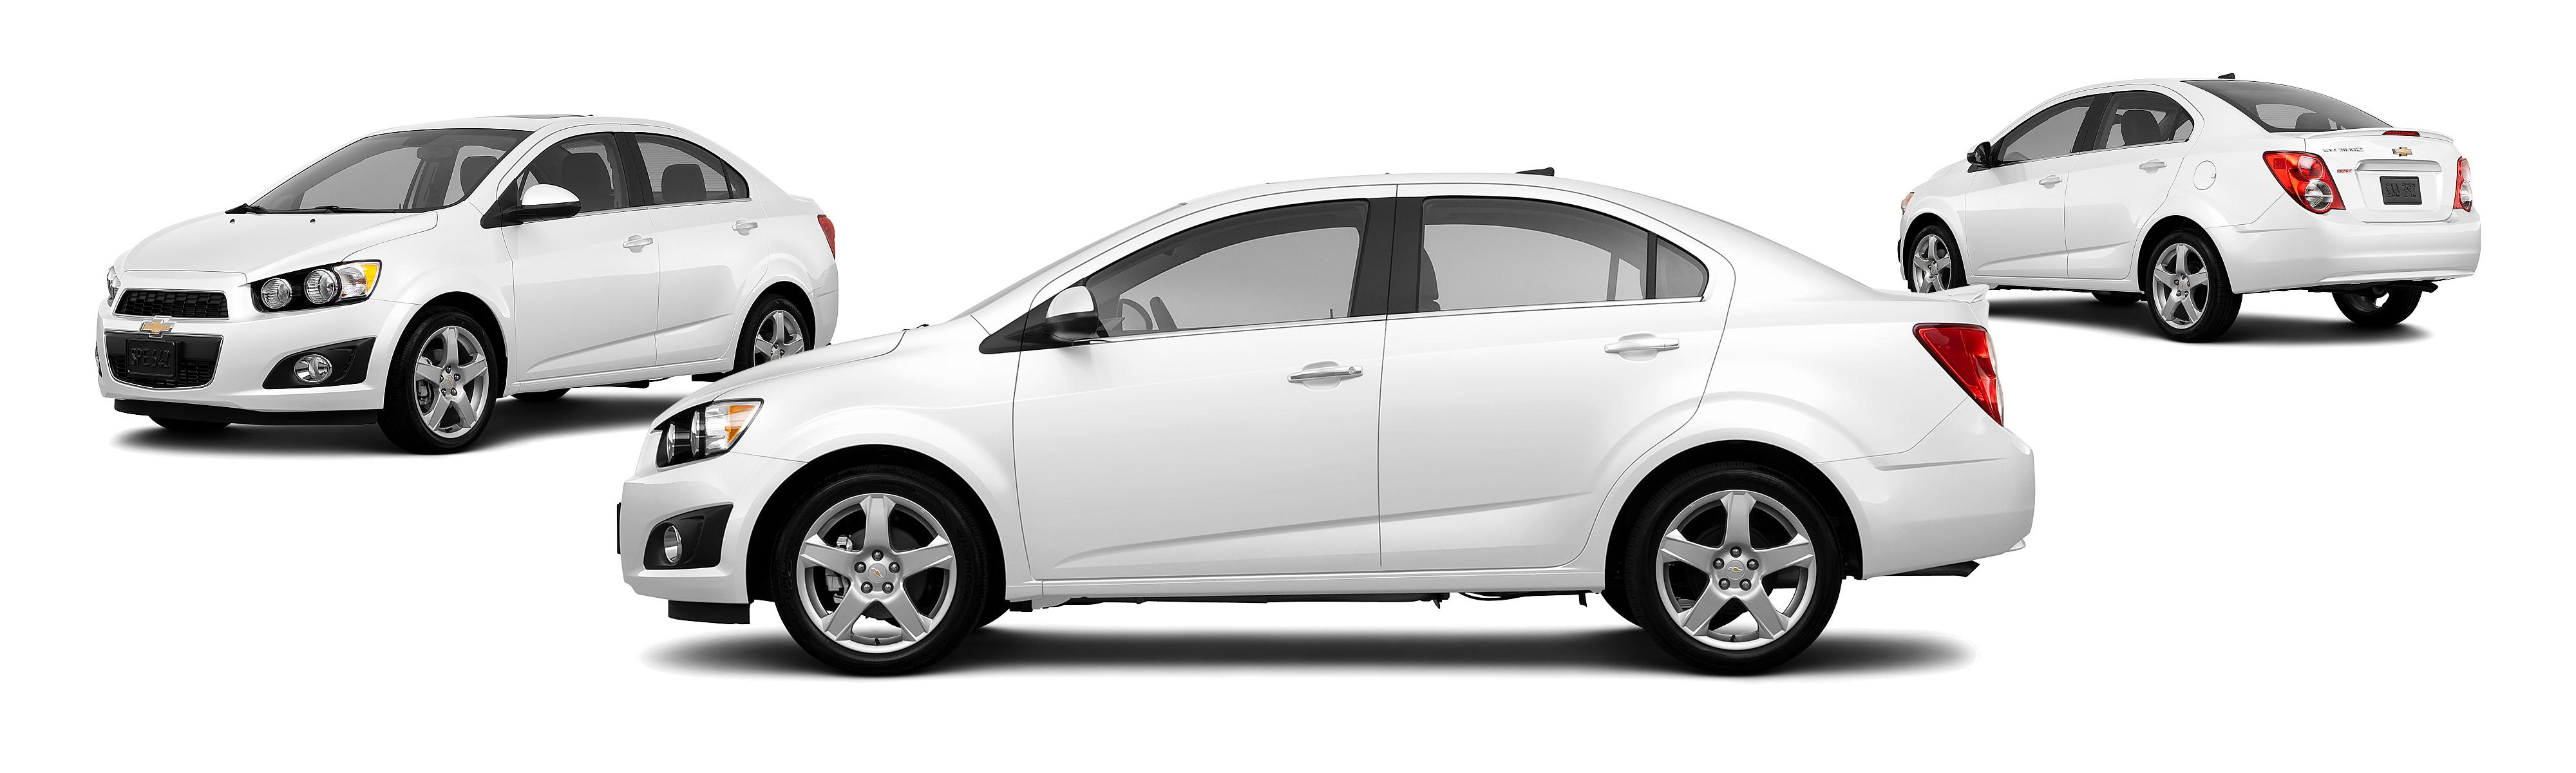 Chevrolet Sonic Repair Manual: Tire Pressure Monitor Operation